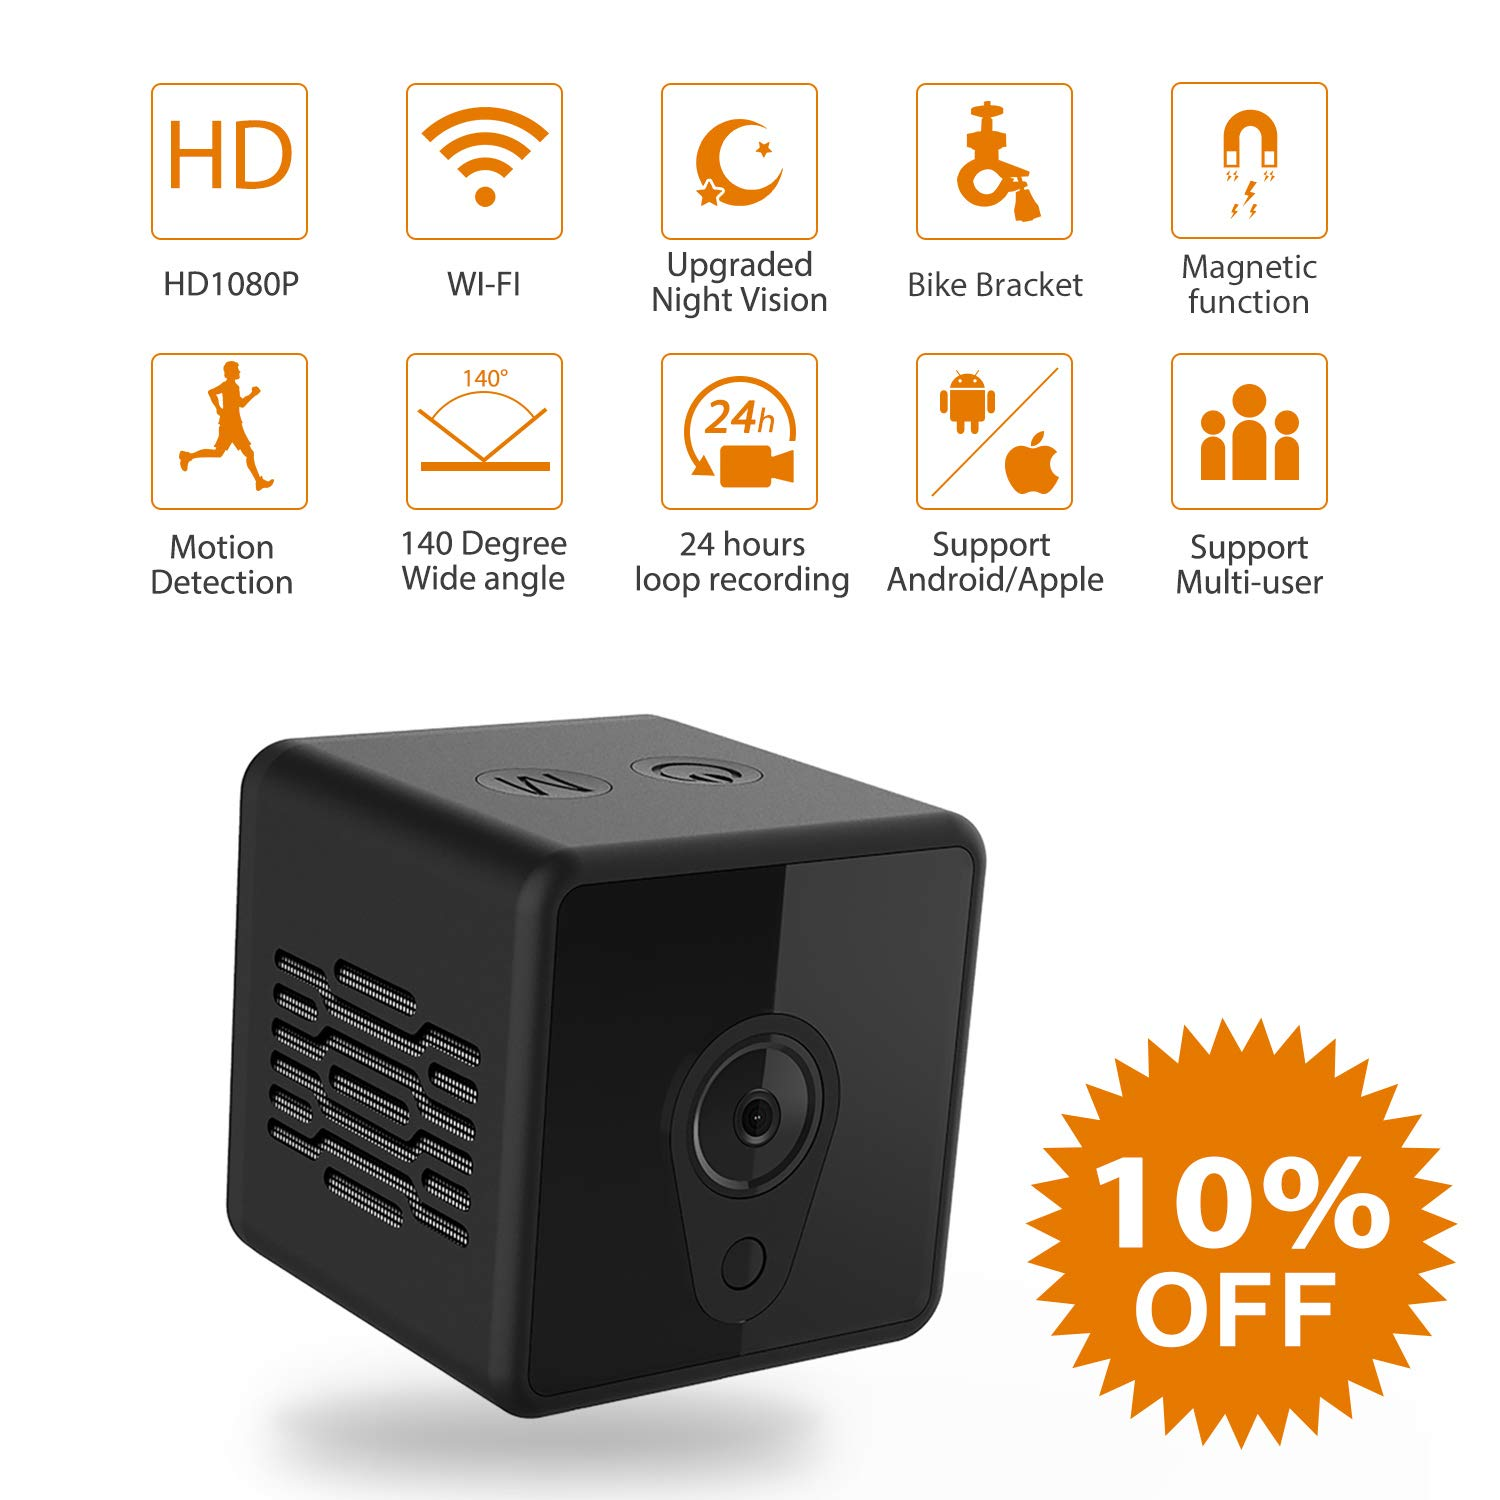 Mini Spy Camera WiFi, Jayol 1080P Spy Hidden Camera Upgraded Night Vision and Motion Detection Spy Cam, Portable Nanny Camera for Home/Office Security and Outdoor (with Cell Phone App) by Jayol